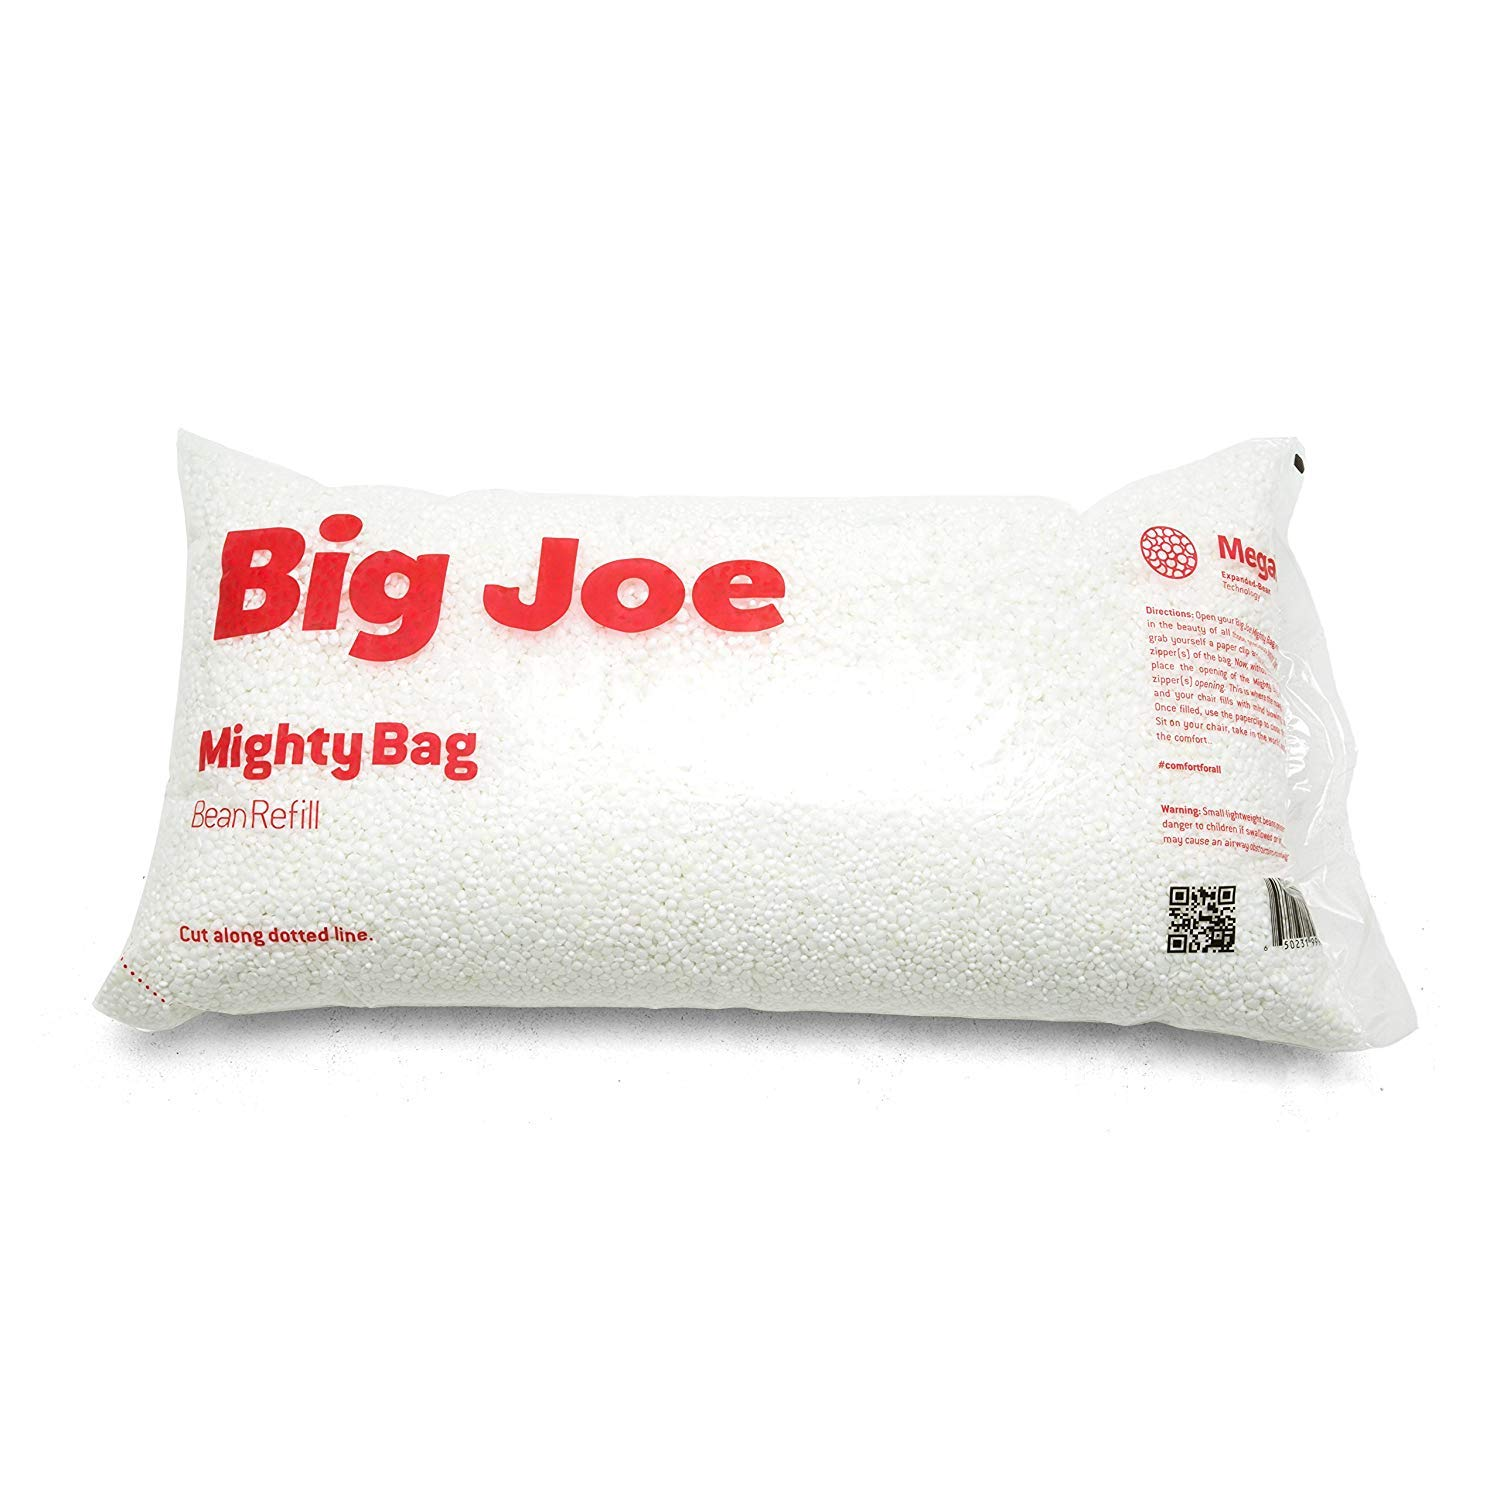 Comfort Research Megahh 100 L UltimaX Bean Bags Refill 2 Count White